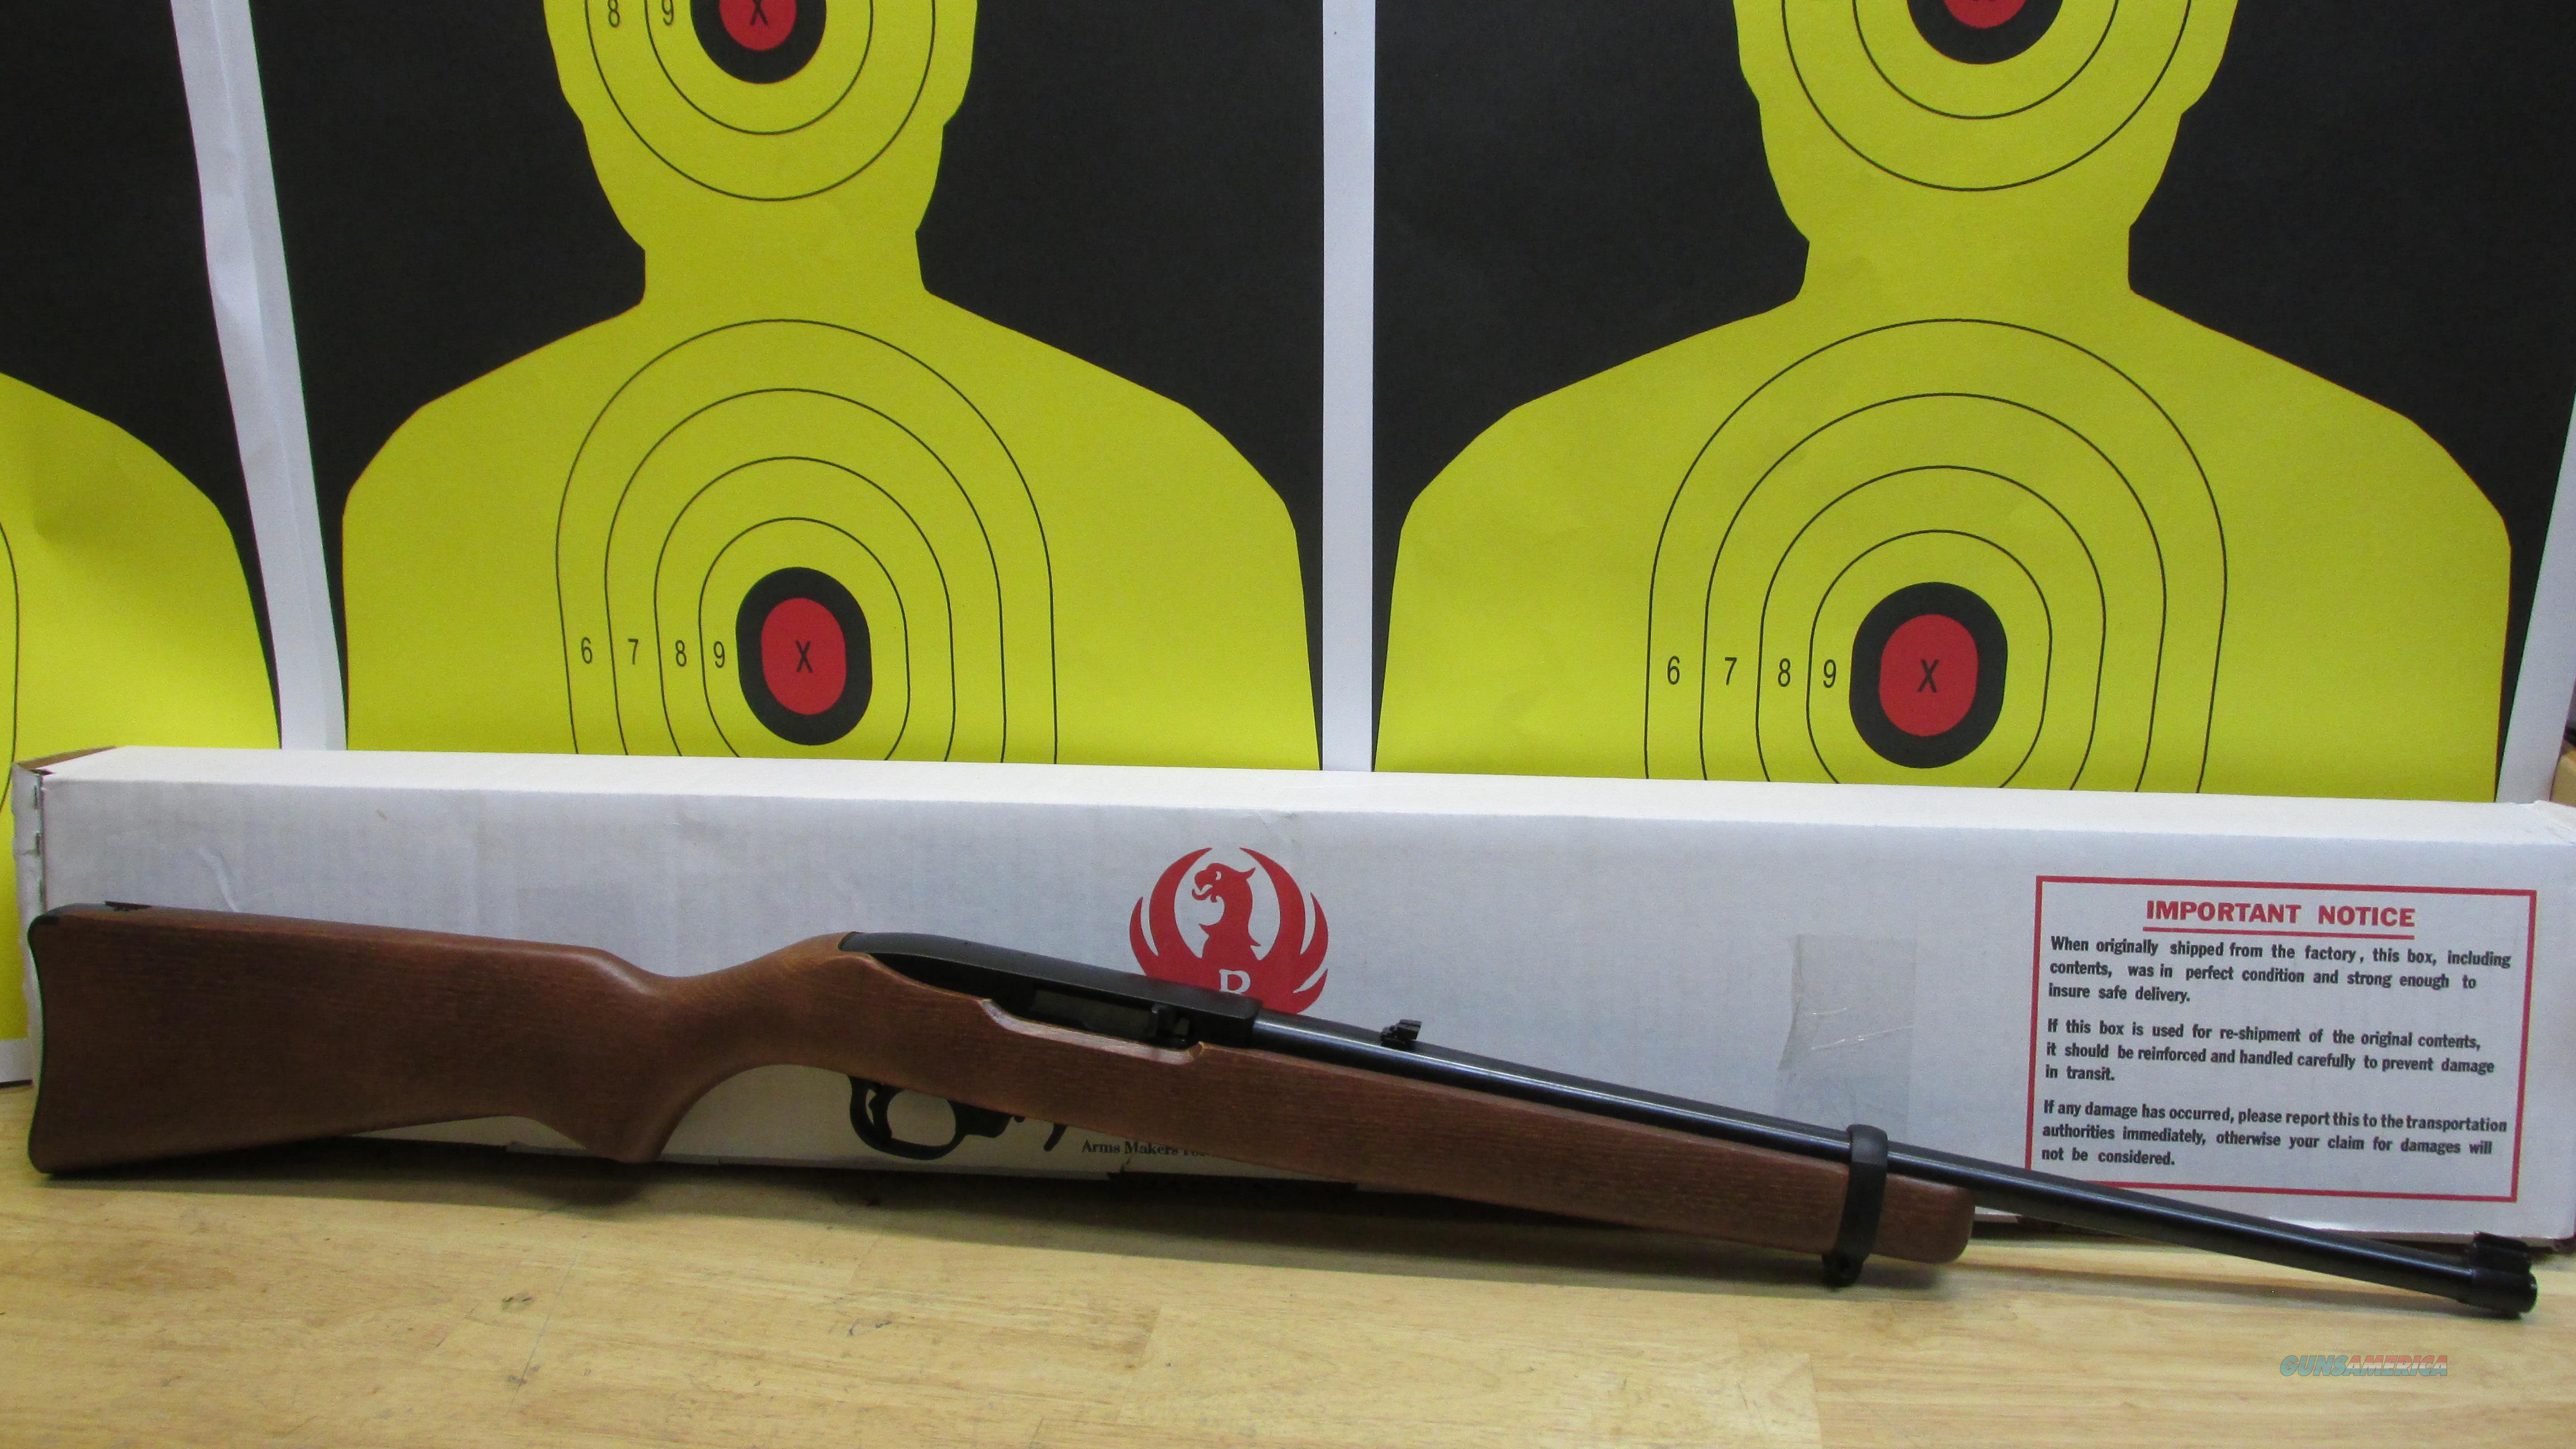 "RUGER 10/22 .22LR RIFLE WOOD STOCK, 10 ROUND MAGAZINE, 18.5"" BARREL  Guns > Rifles > Ruger Rifles > 10-22"